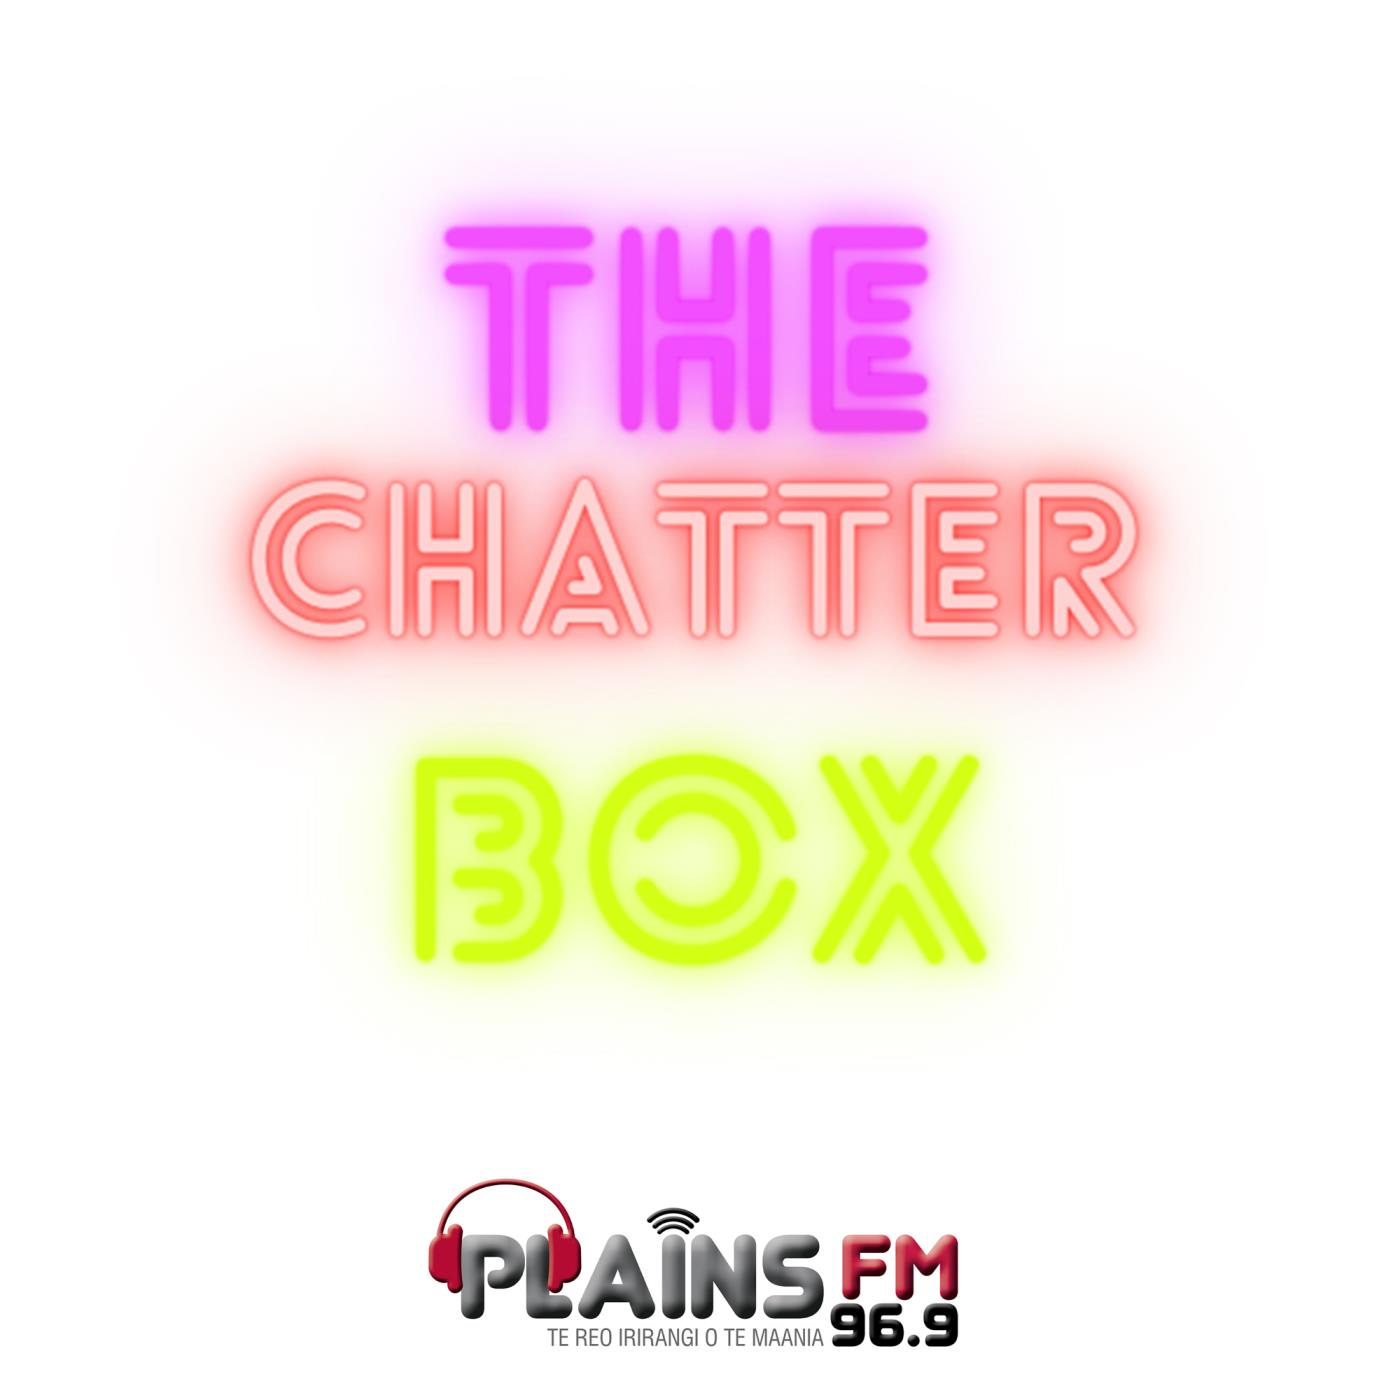 The Chatter Box